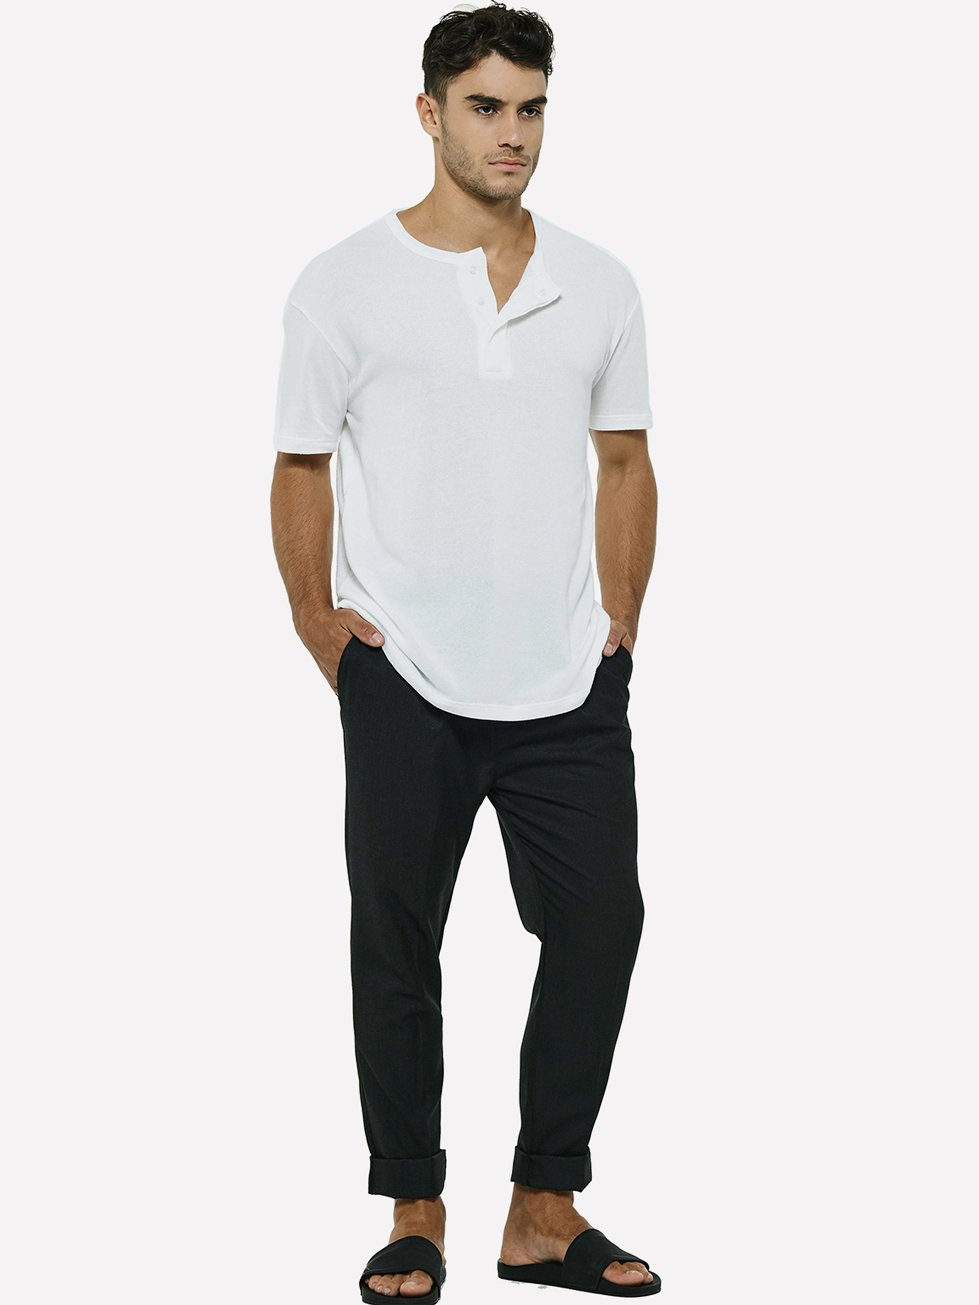 Foto do Camiseta Senplo Henley White